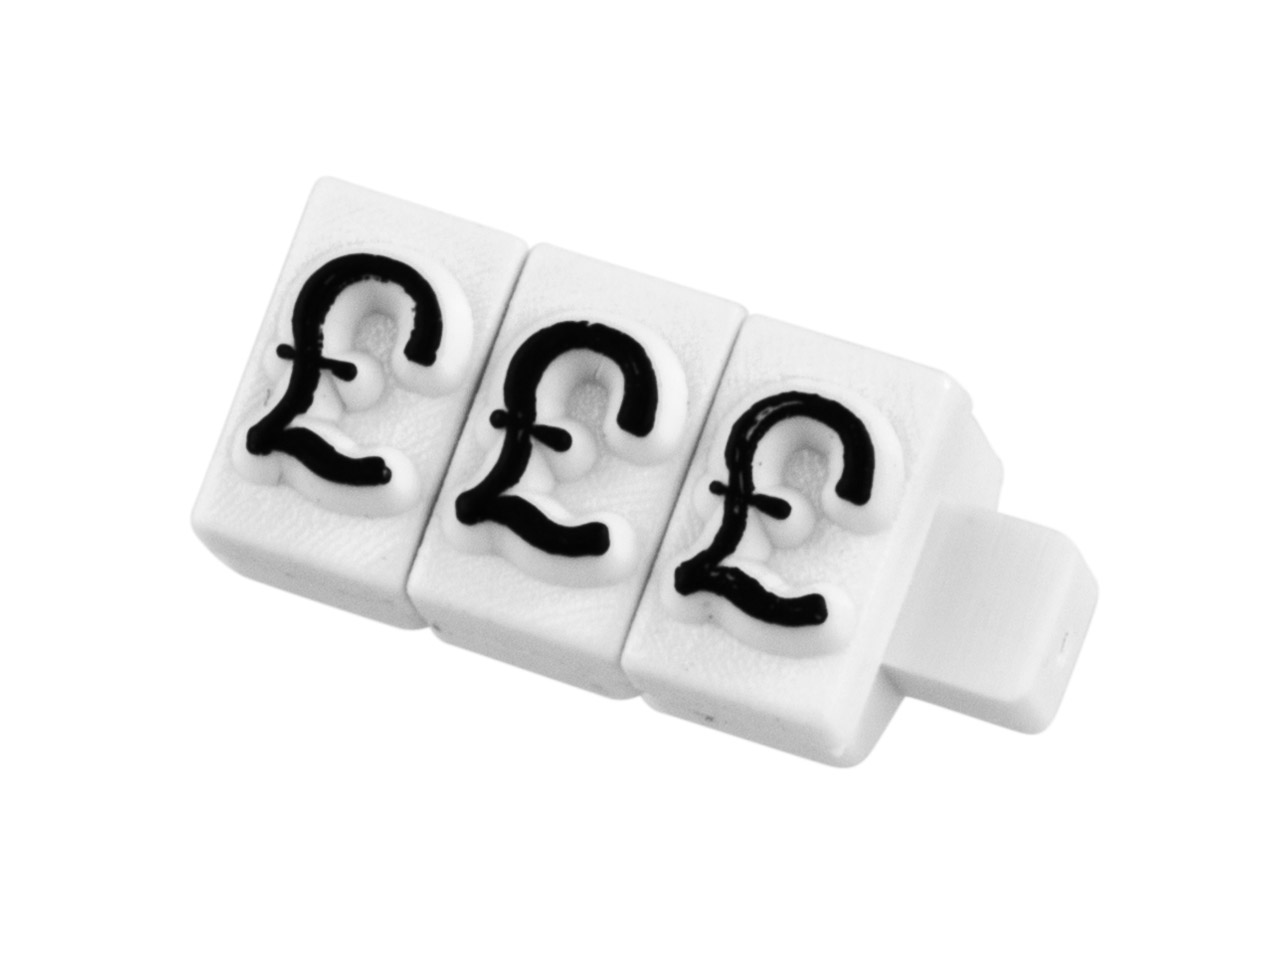 Pricing Block Cube Pack of 20 £ Set White And Black Small Font